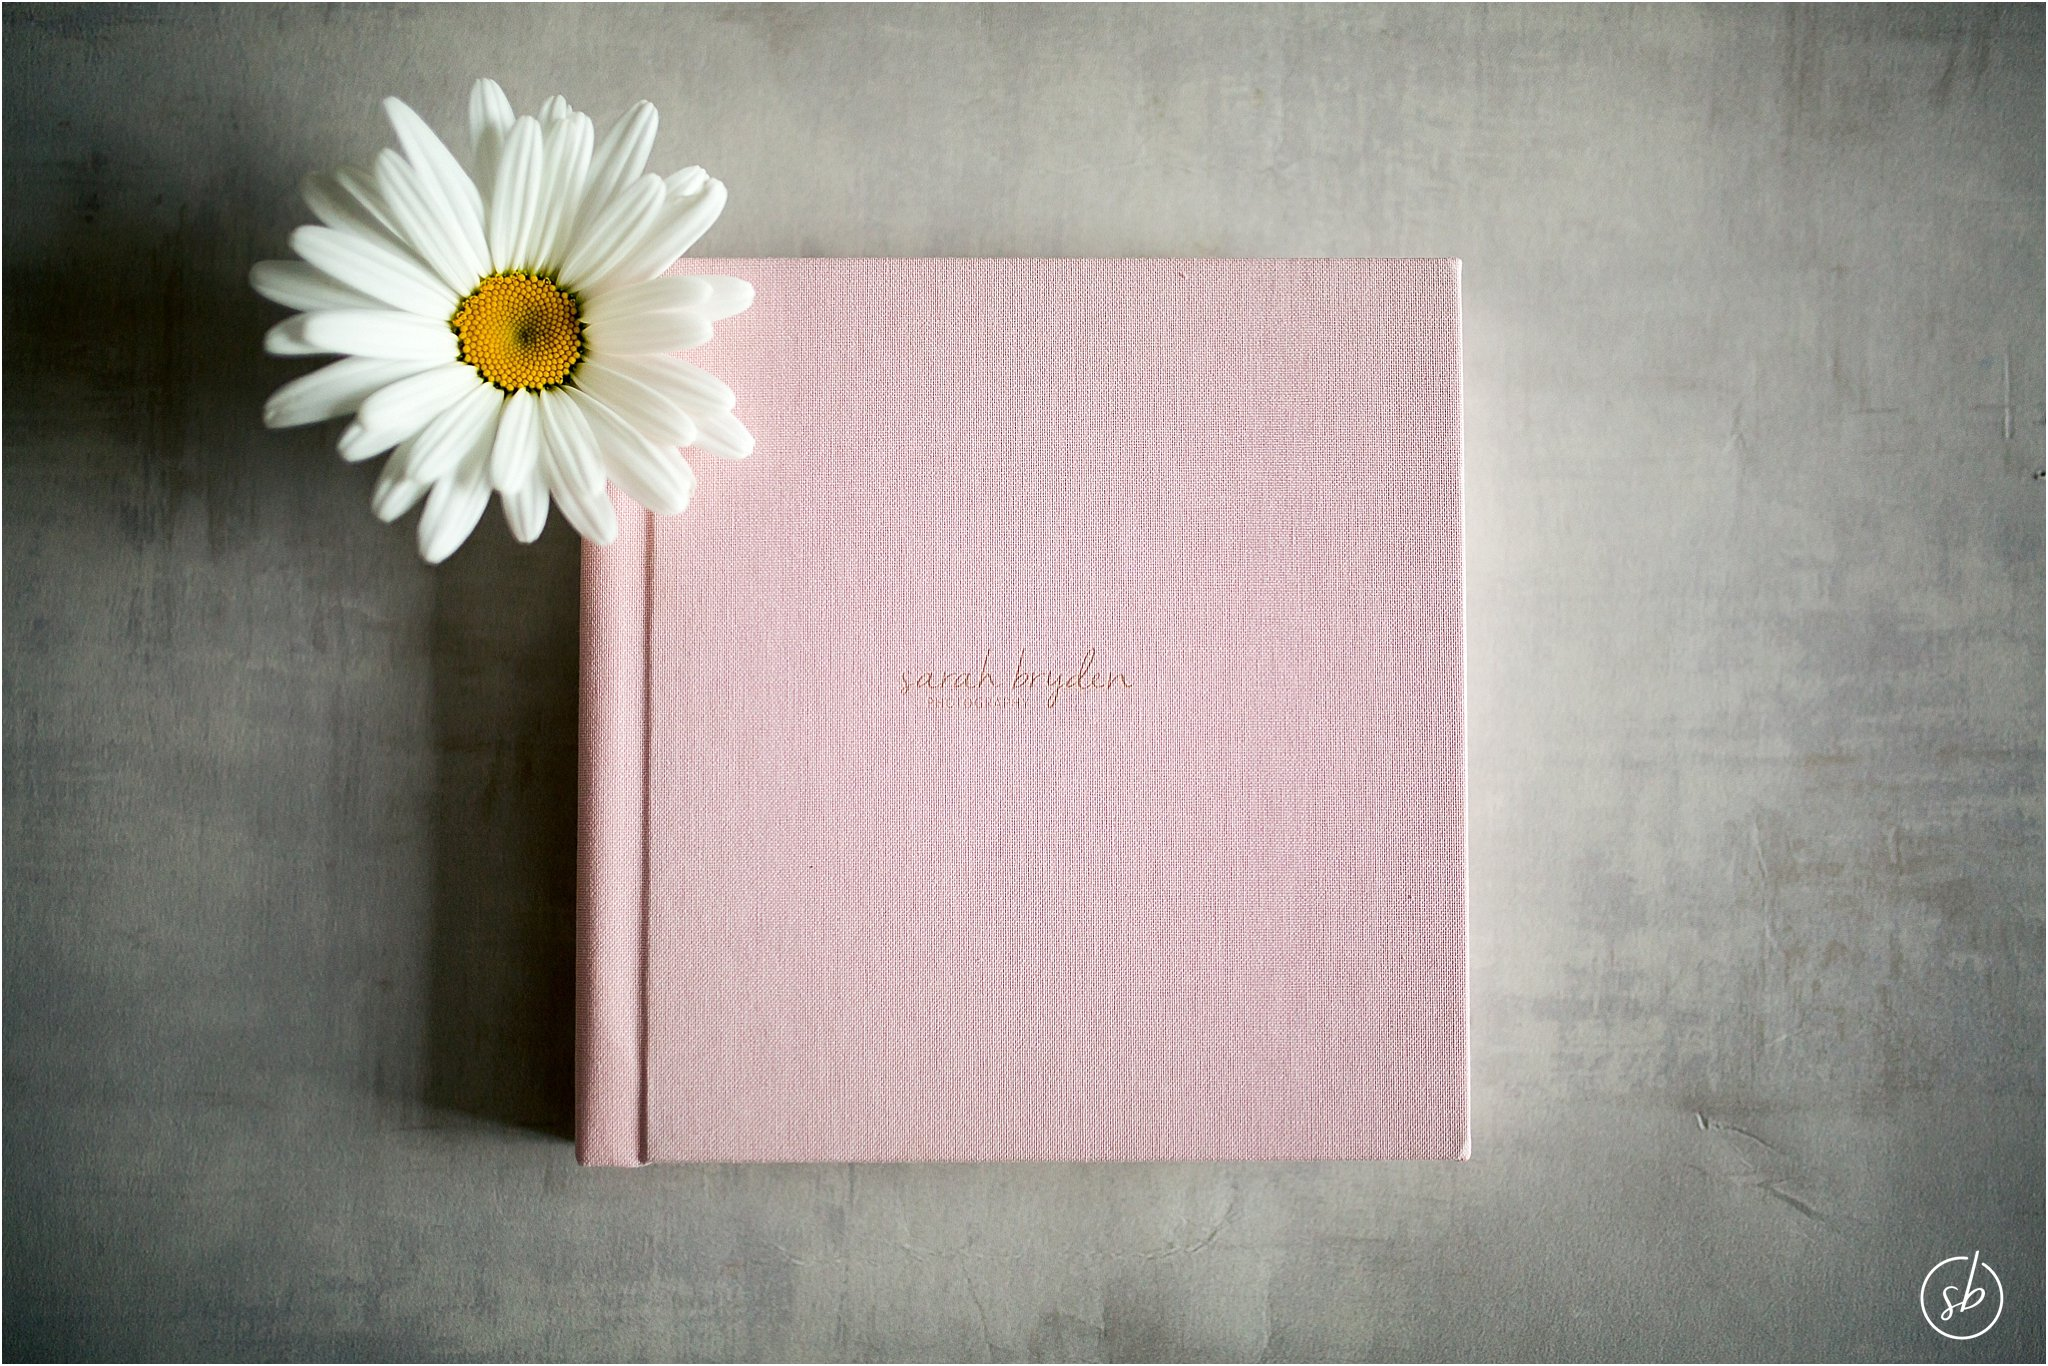 Parent Wedding Albums: Are they worth it?